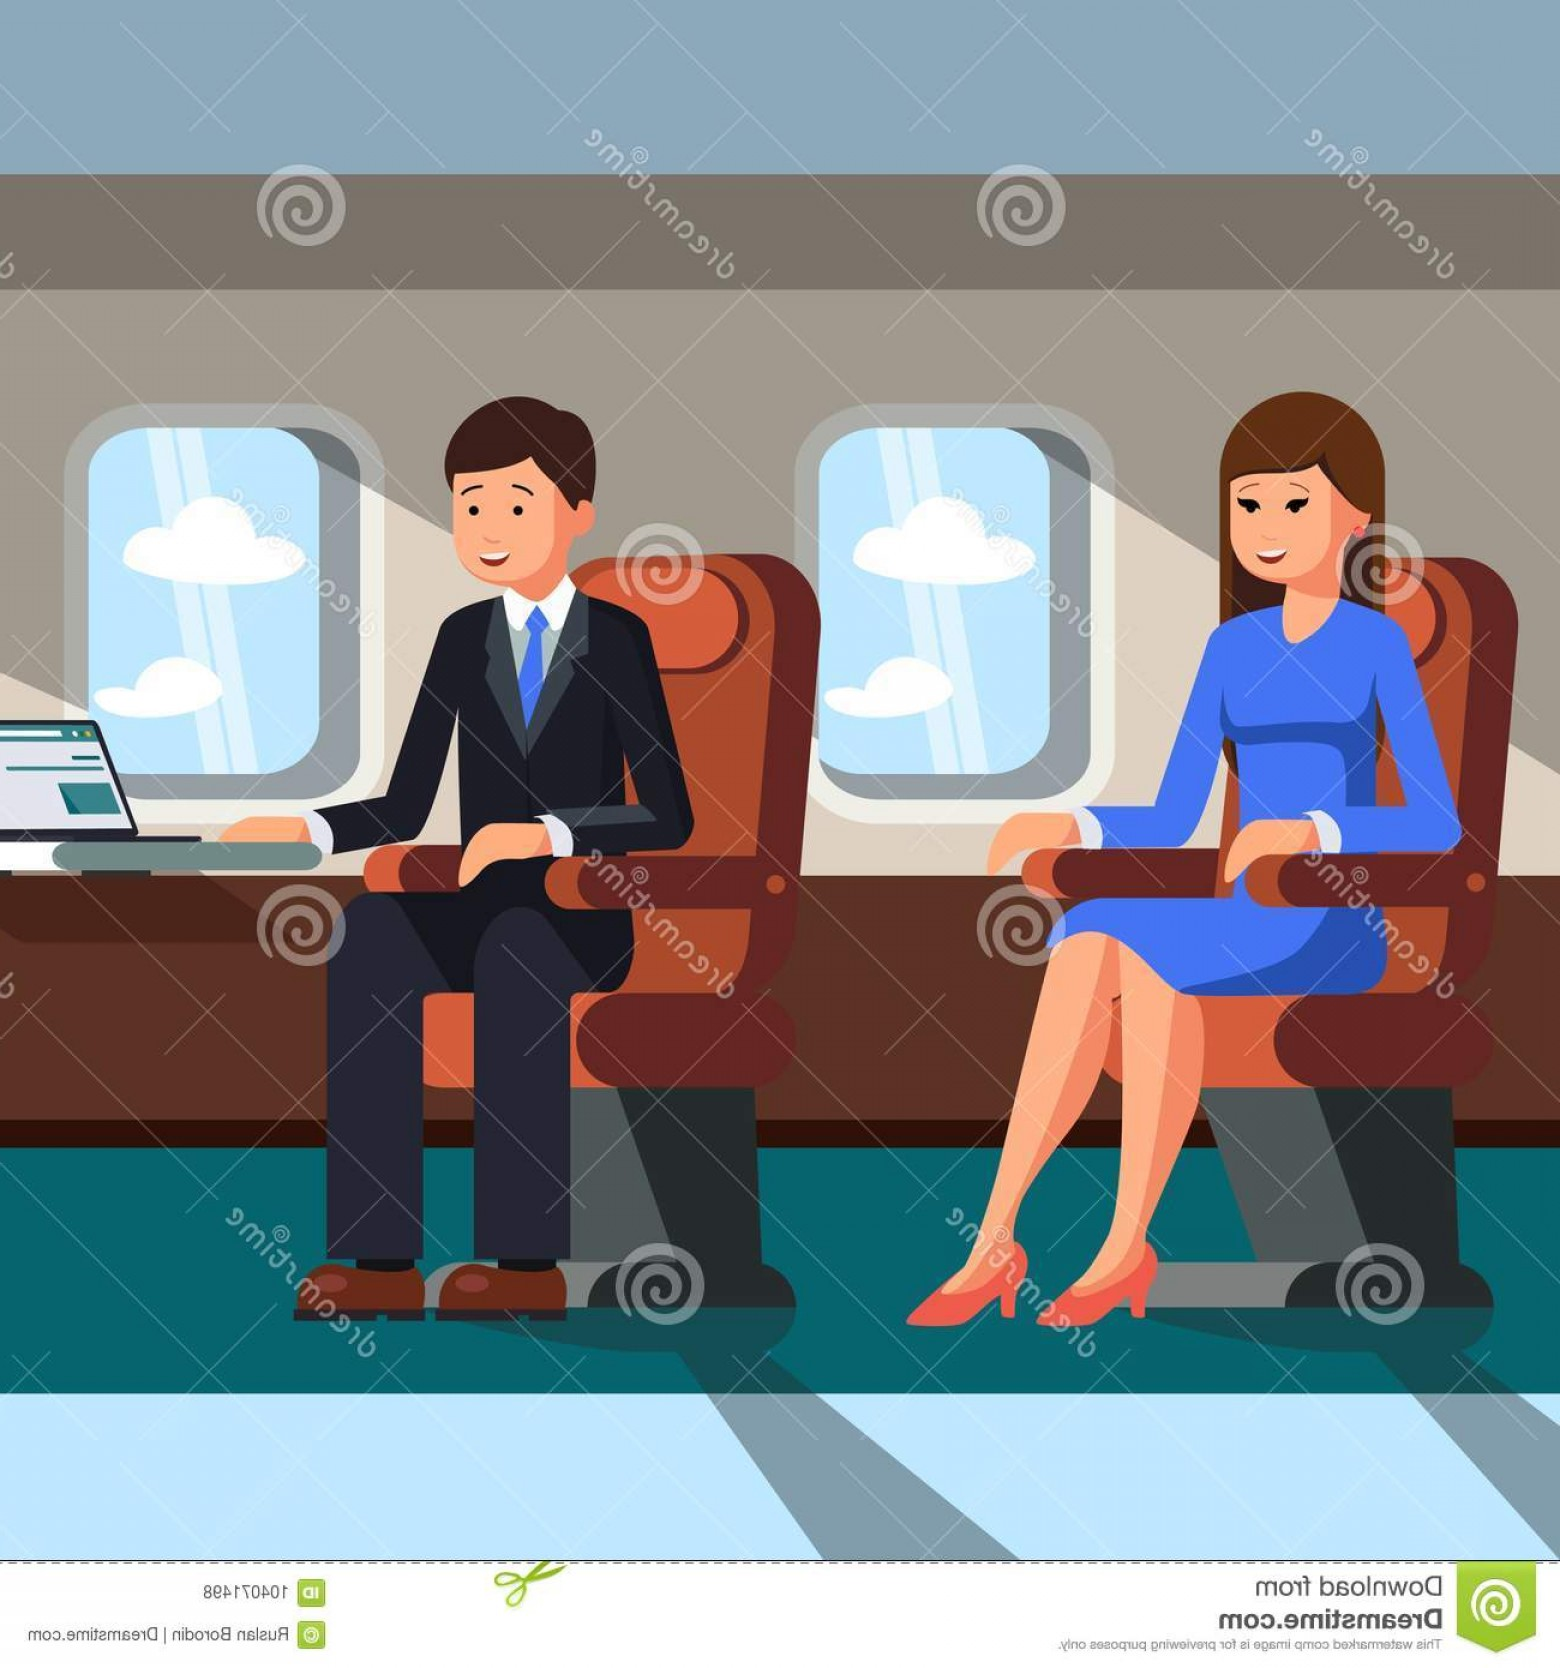 Vector Man Working In Cabin: Two Businessmen Man Woman Sitting Cabin Plane Near Porthole Concept Business Flights Vector Image